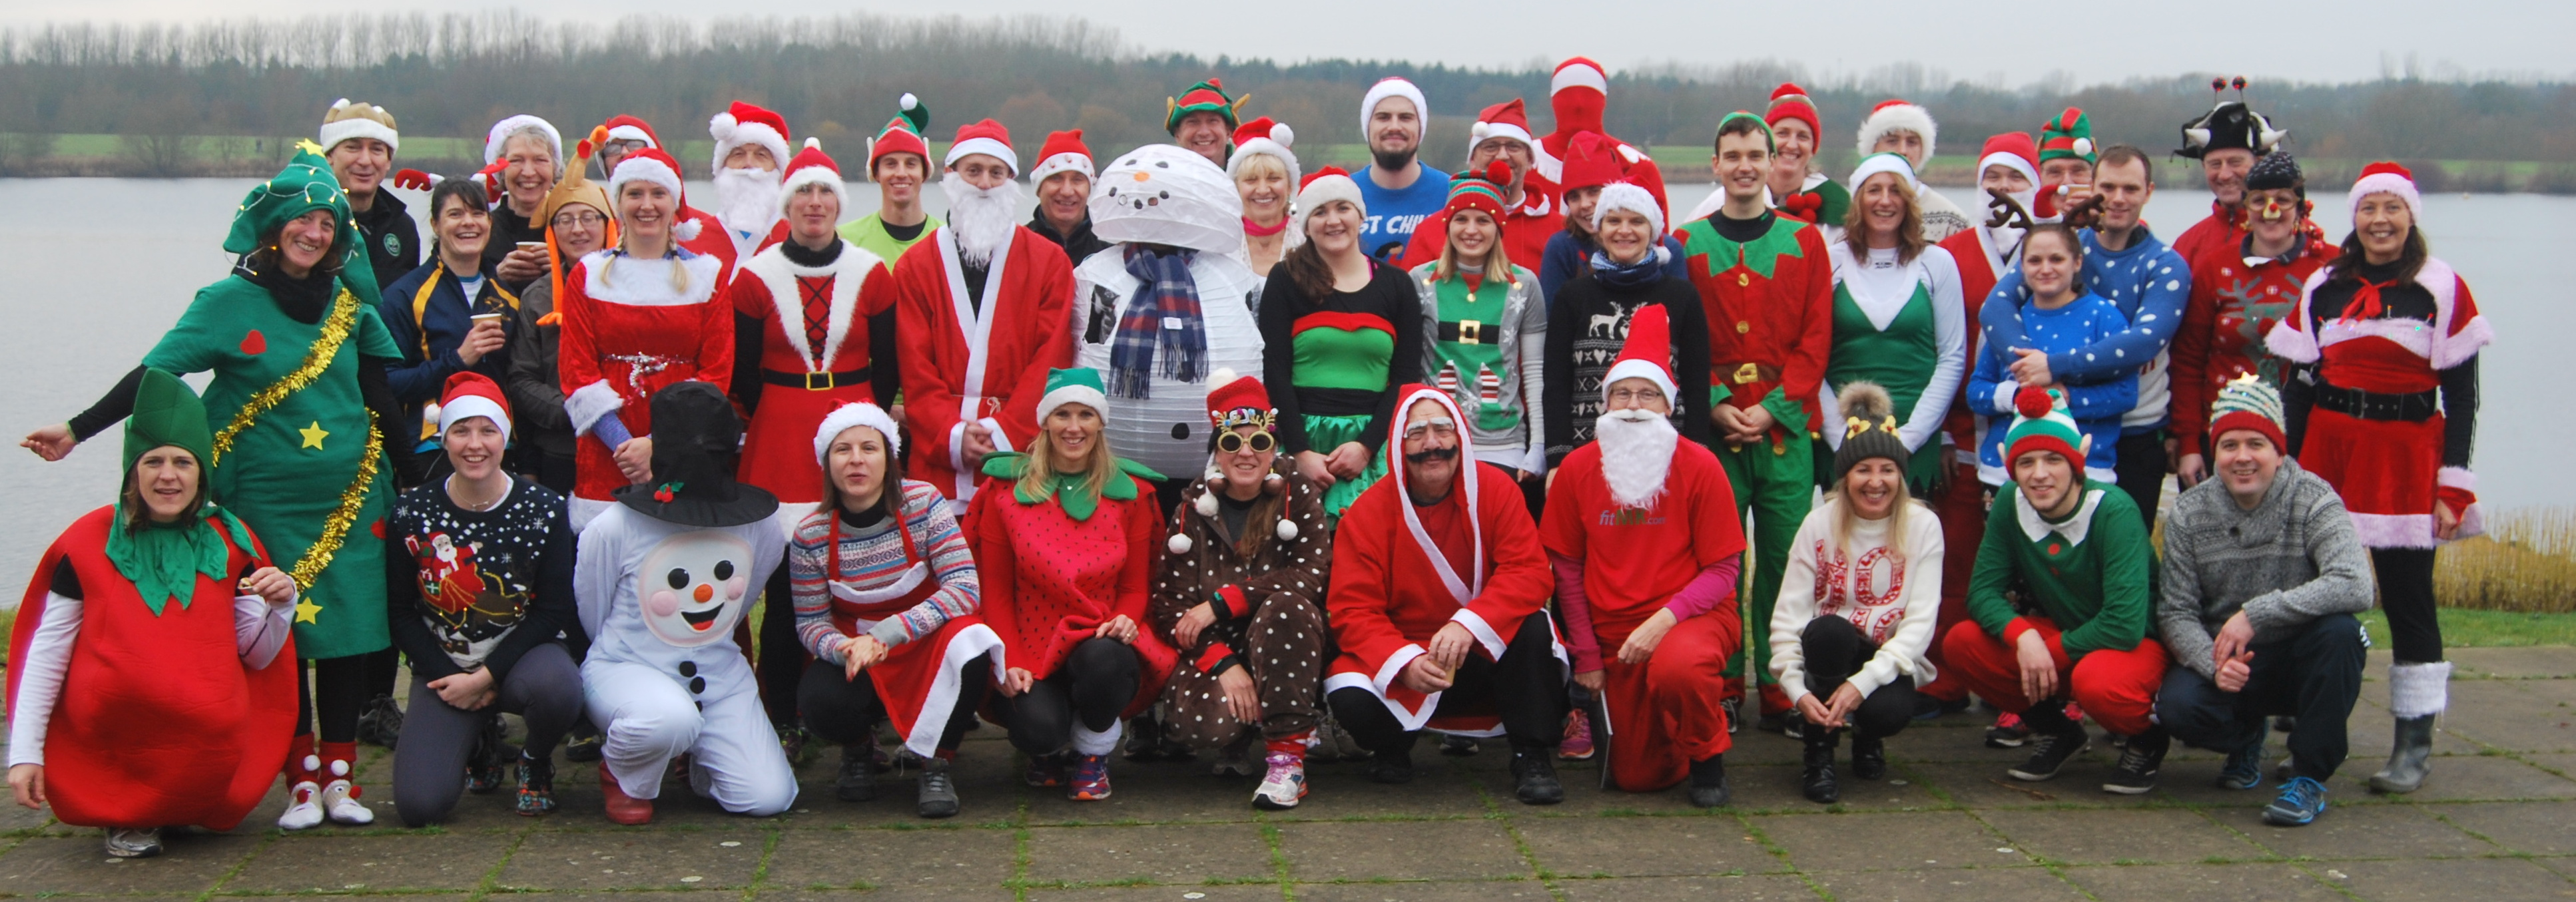 MKRC Christmas Races 2016